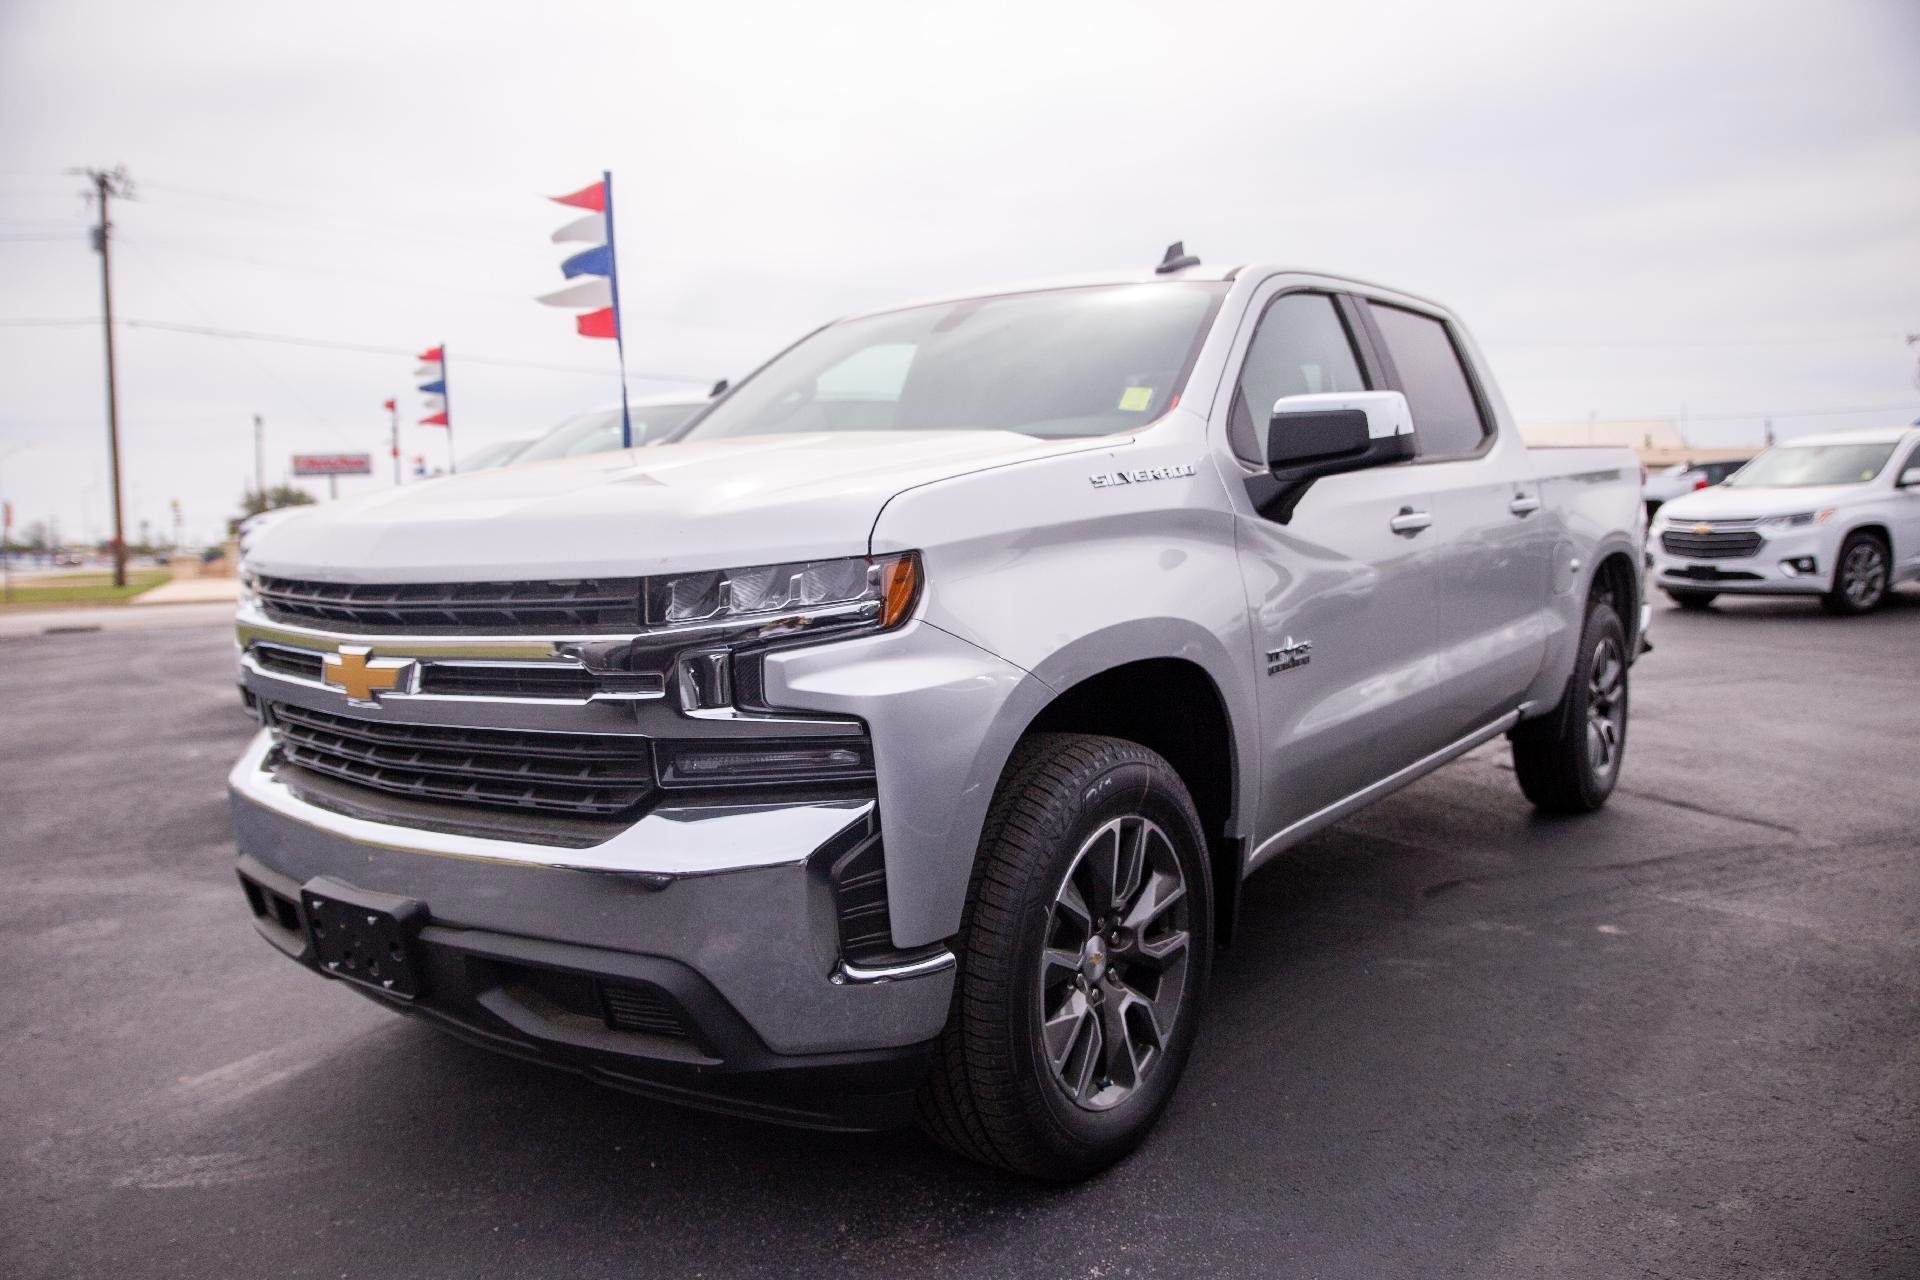 New 2019 Chevrolet-Colorado ZR2 Colorado ZR2 for sale $42,900 at M and V Leasing in Brooklyn NY 11223 1